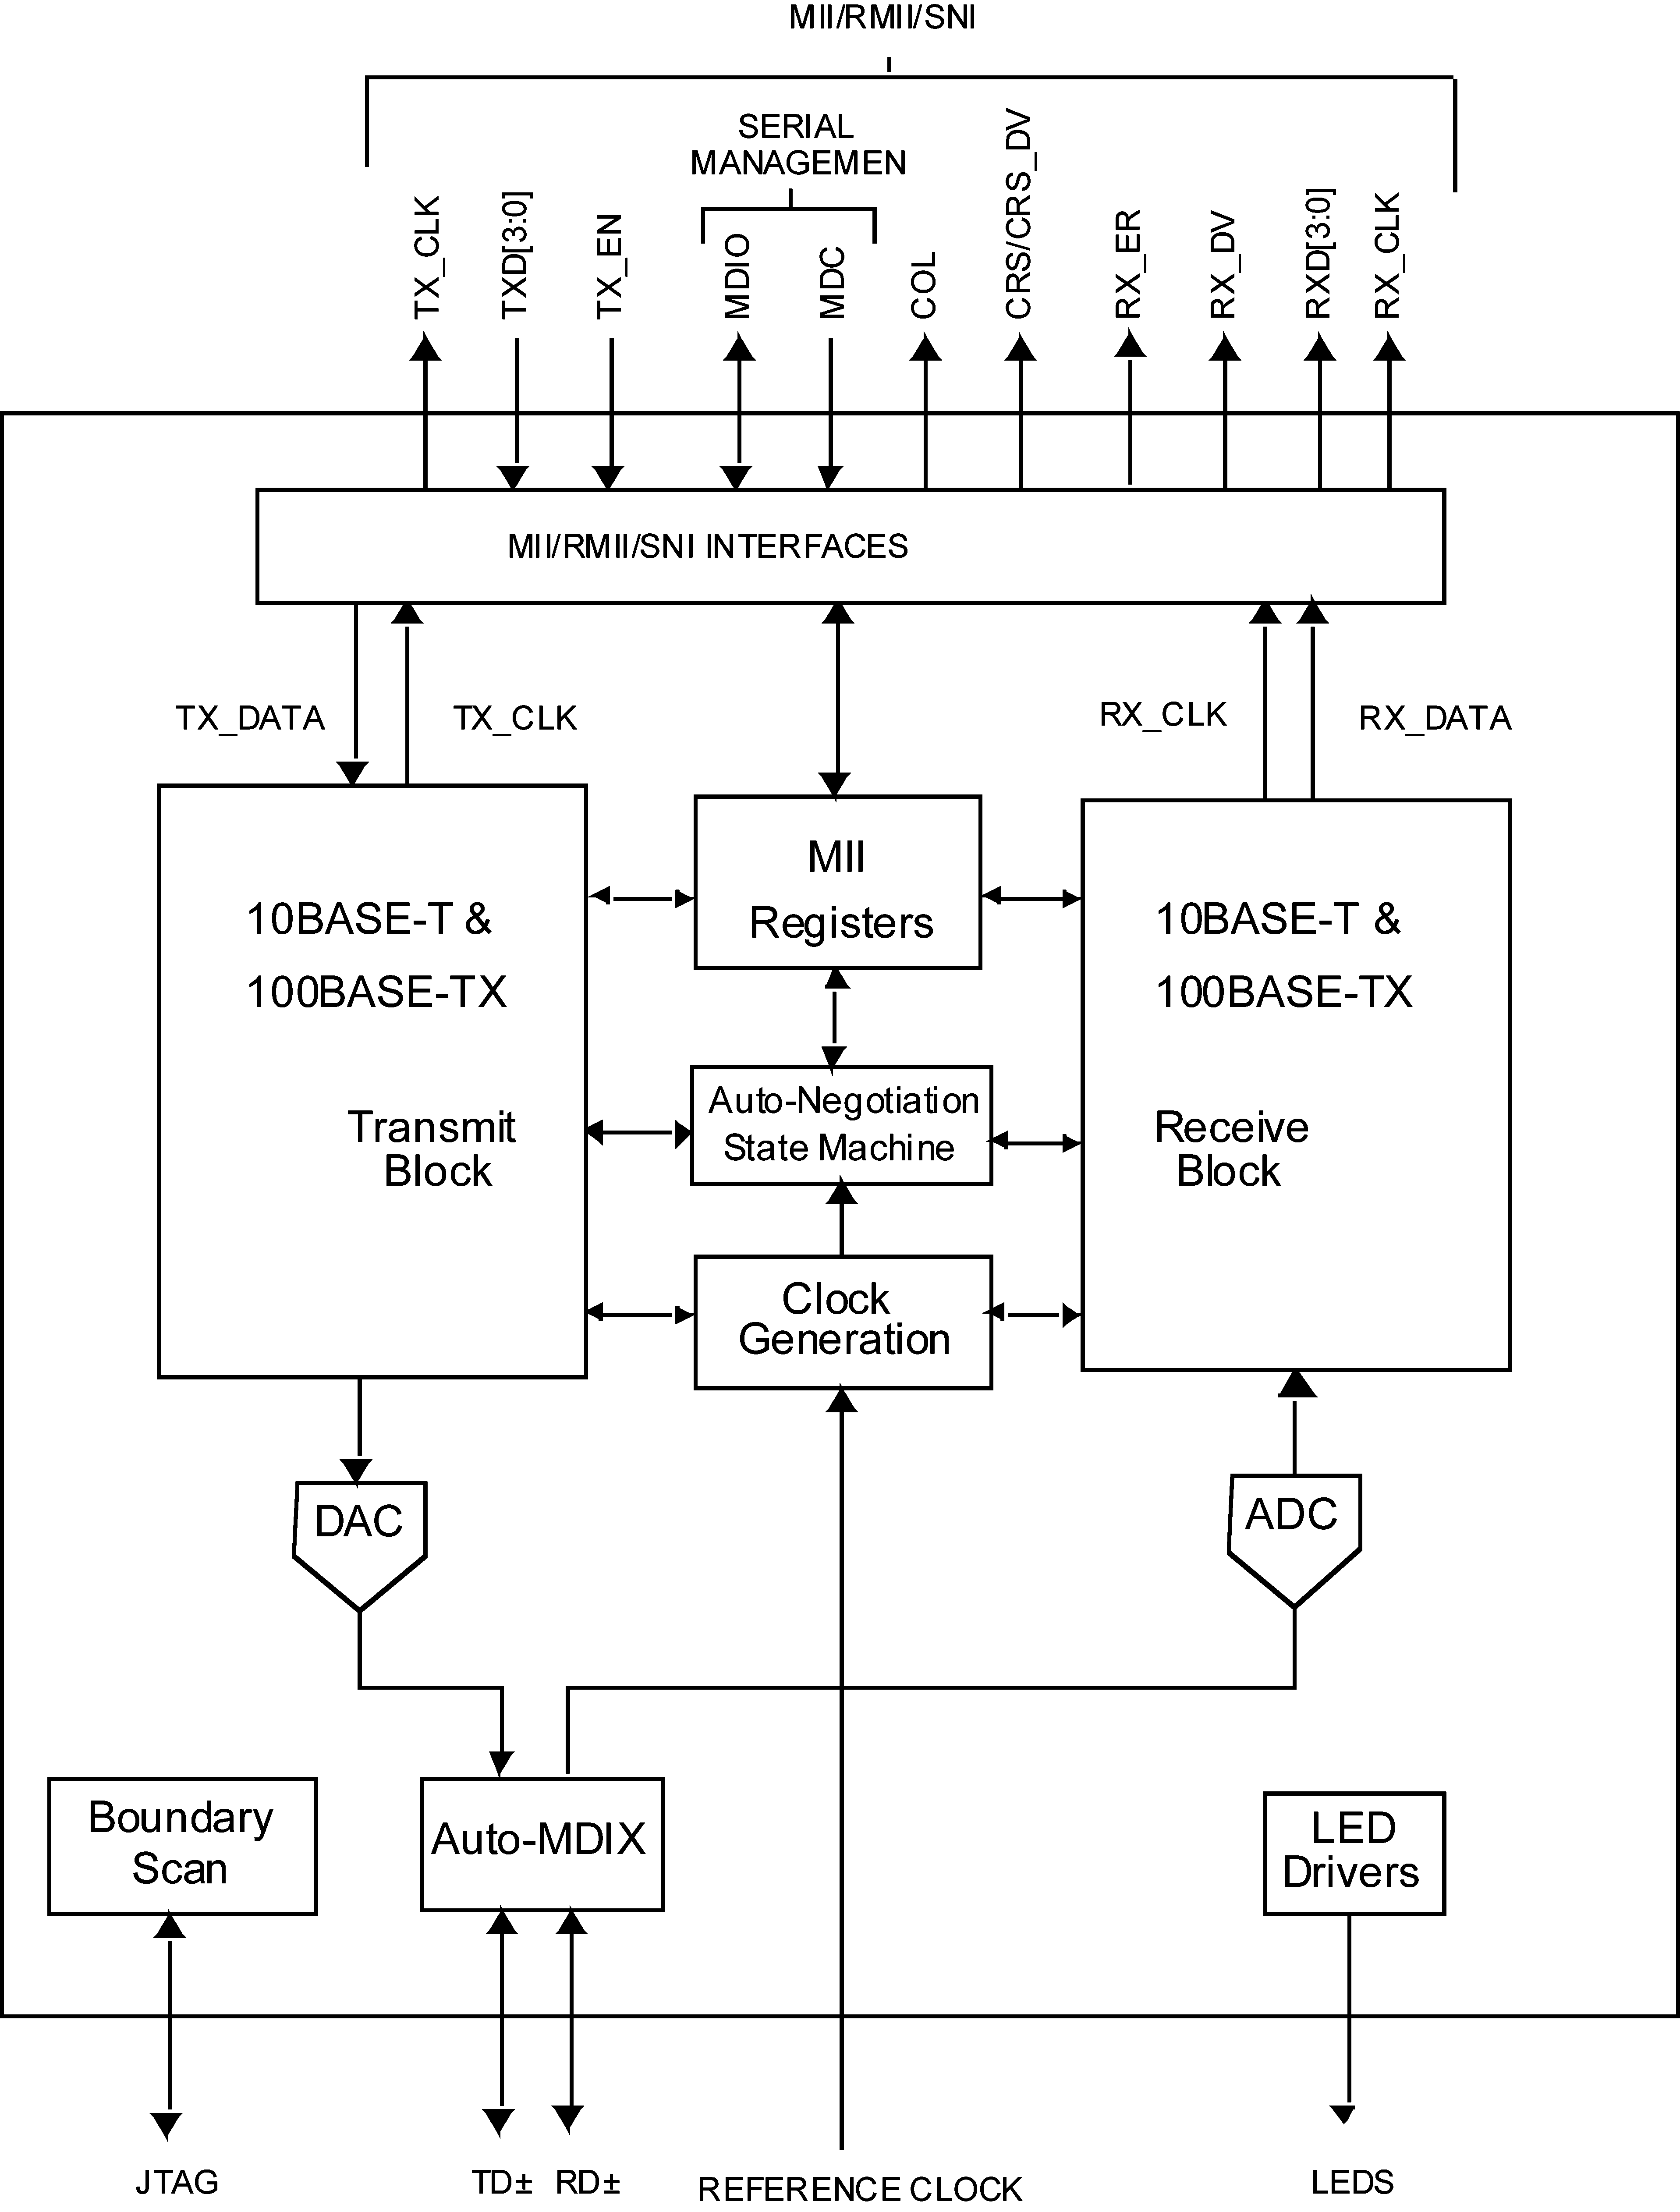 6.2 Functional Block Diagram